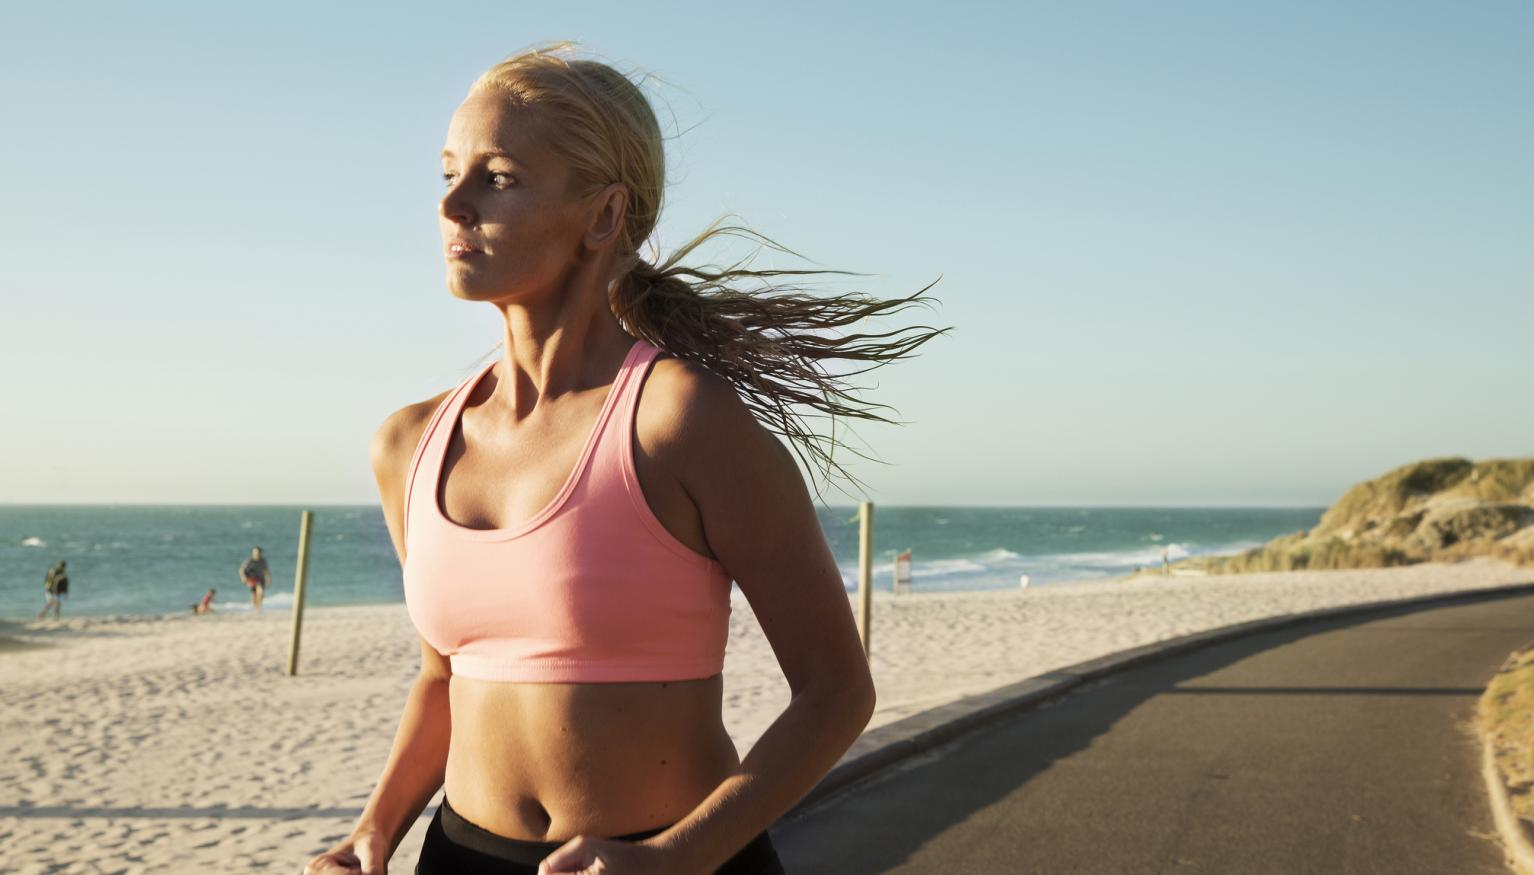 How to adapt your physical activity goals to your lifestyle